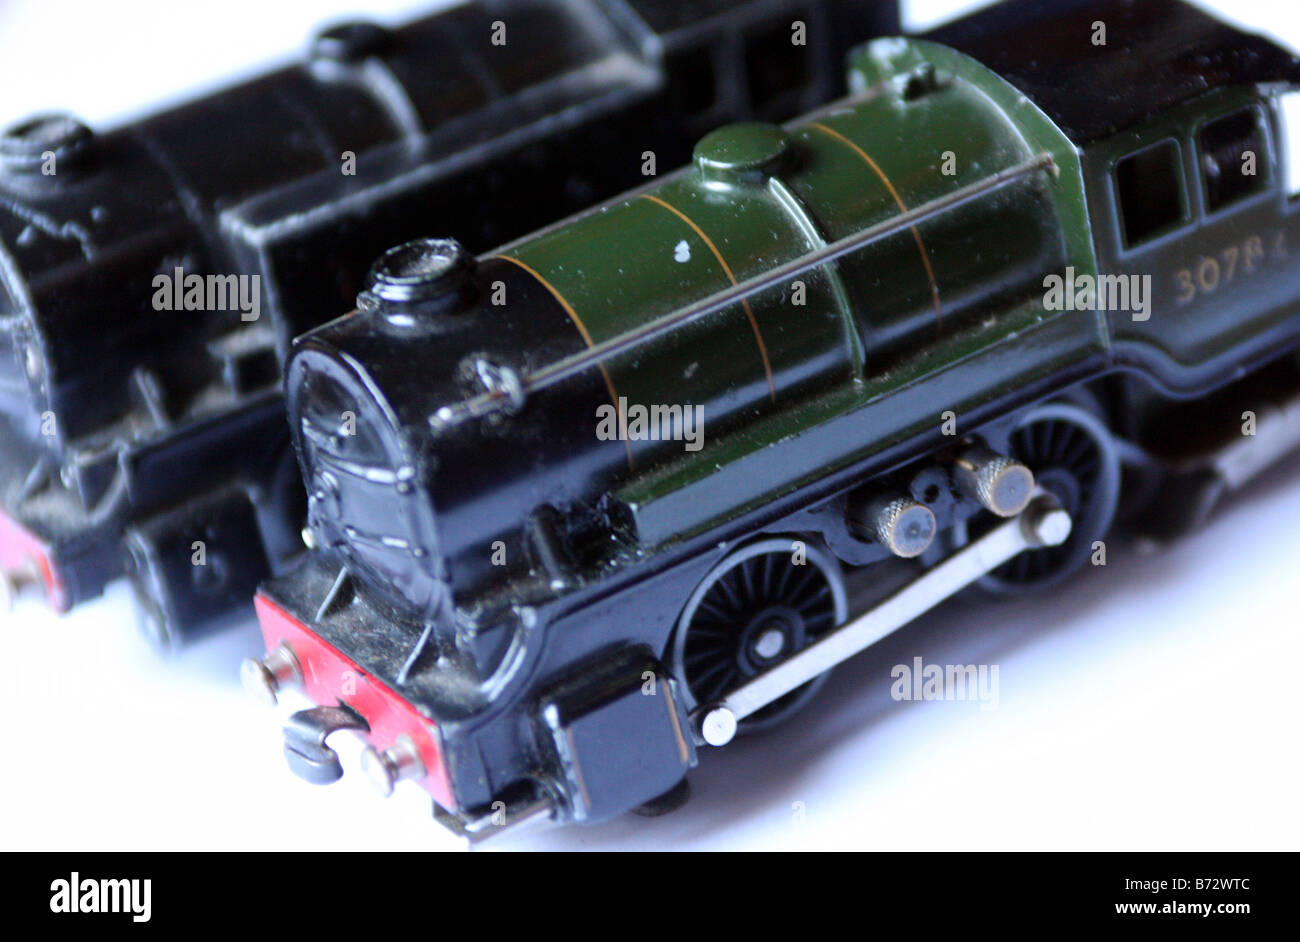 two ttr trix train railway model train locomotives made in the 1950's Stock Photo